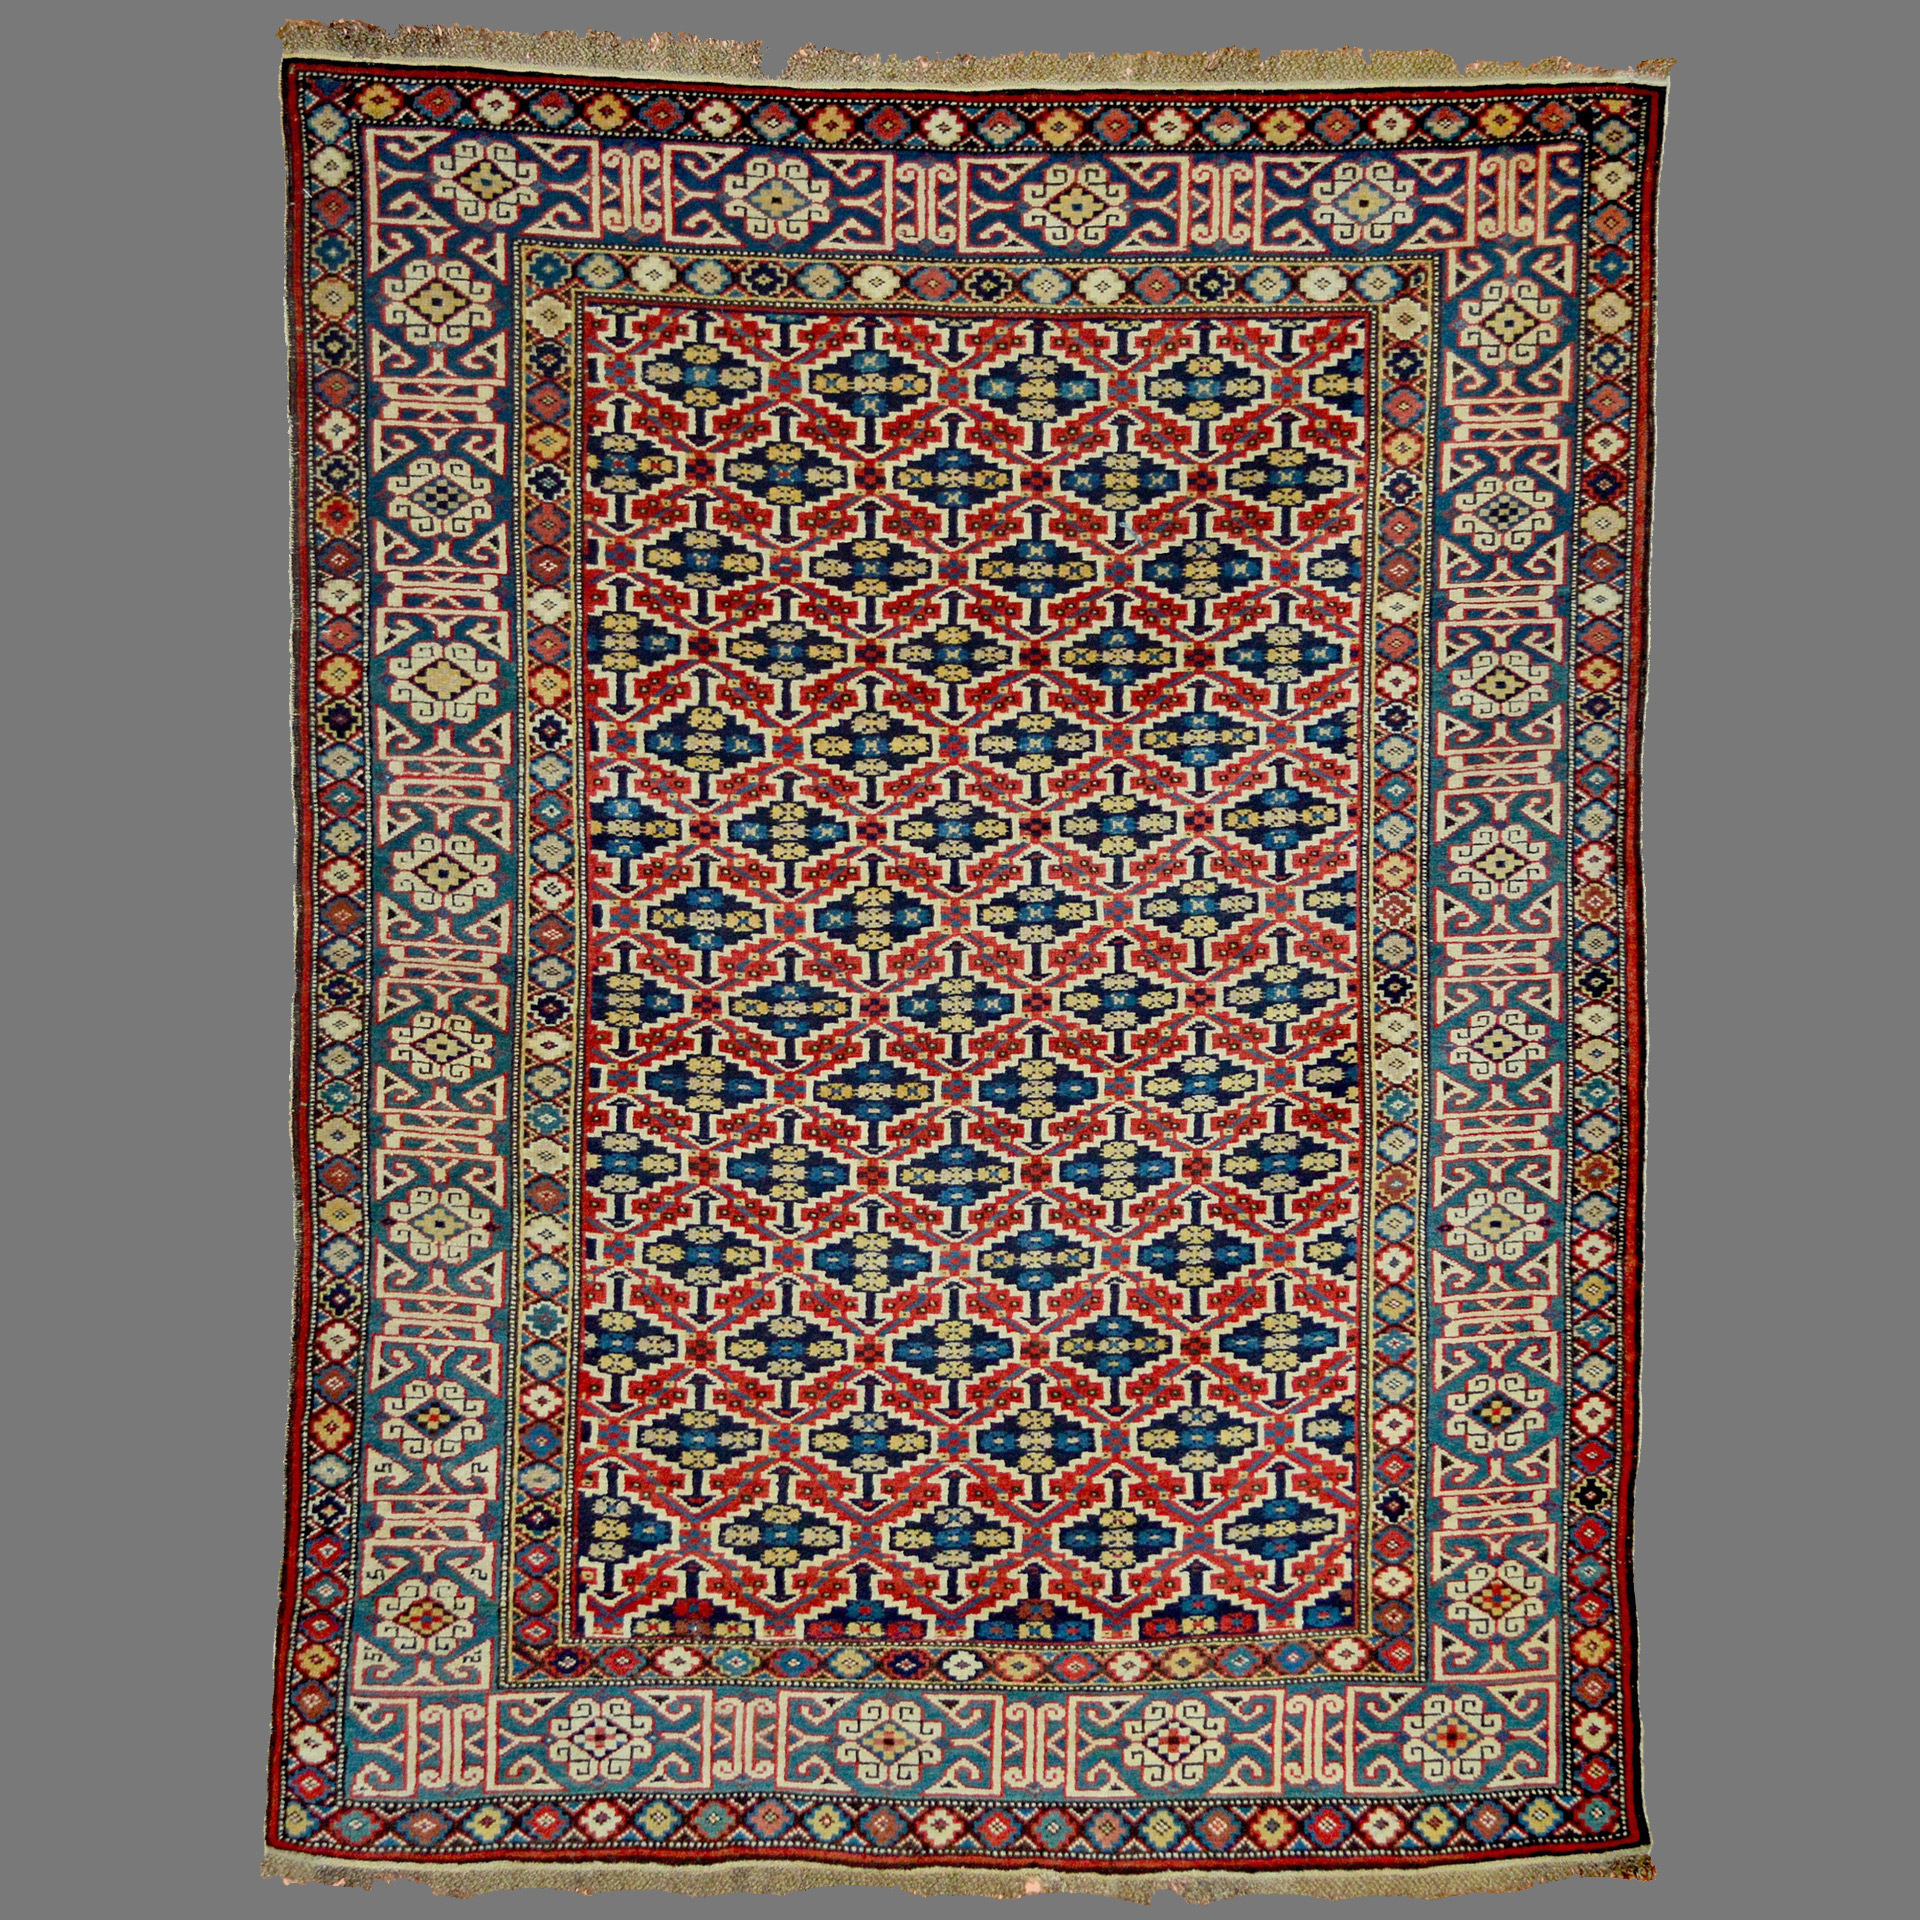 Antique Caucasian Kuba rug with a lattice design framed by a teal blue Kufic border